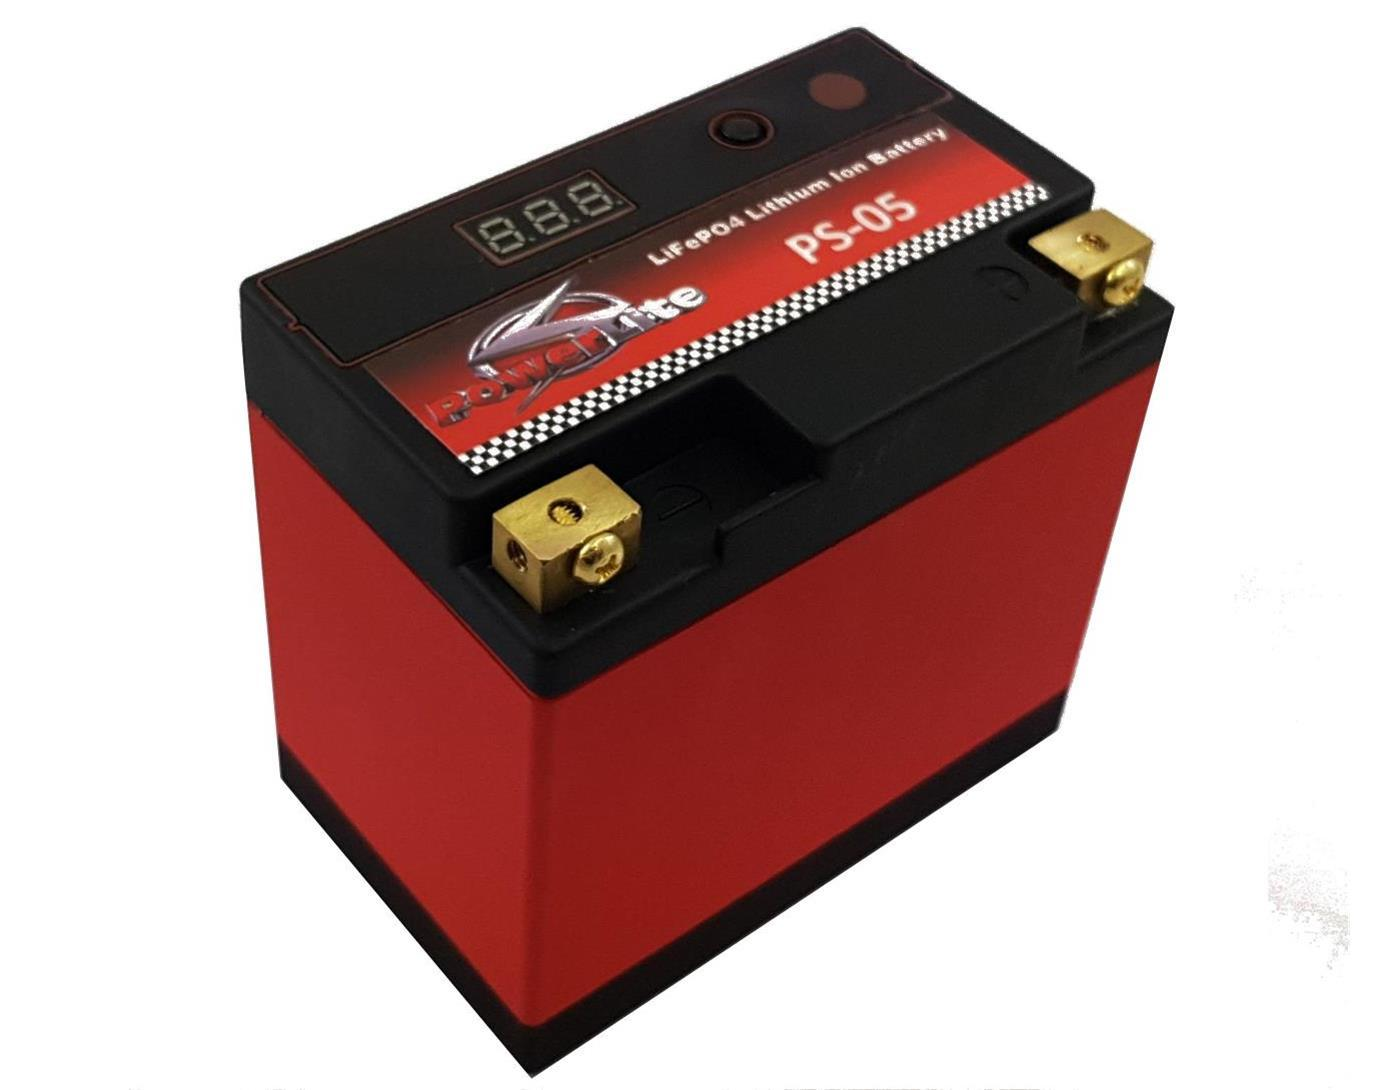 Lithium Car Battery >> Ps 05 Powerlite Lifepo4 Lithium Ion Car Battery 12 8v 5ah 160 Cold Cranking Amps